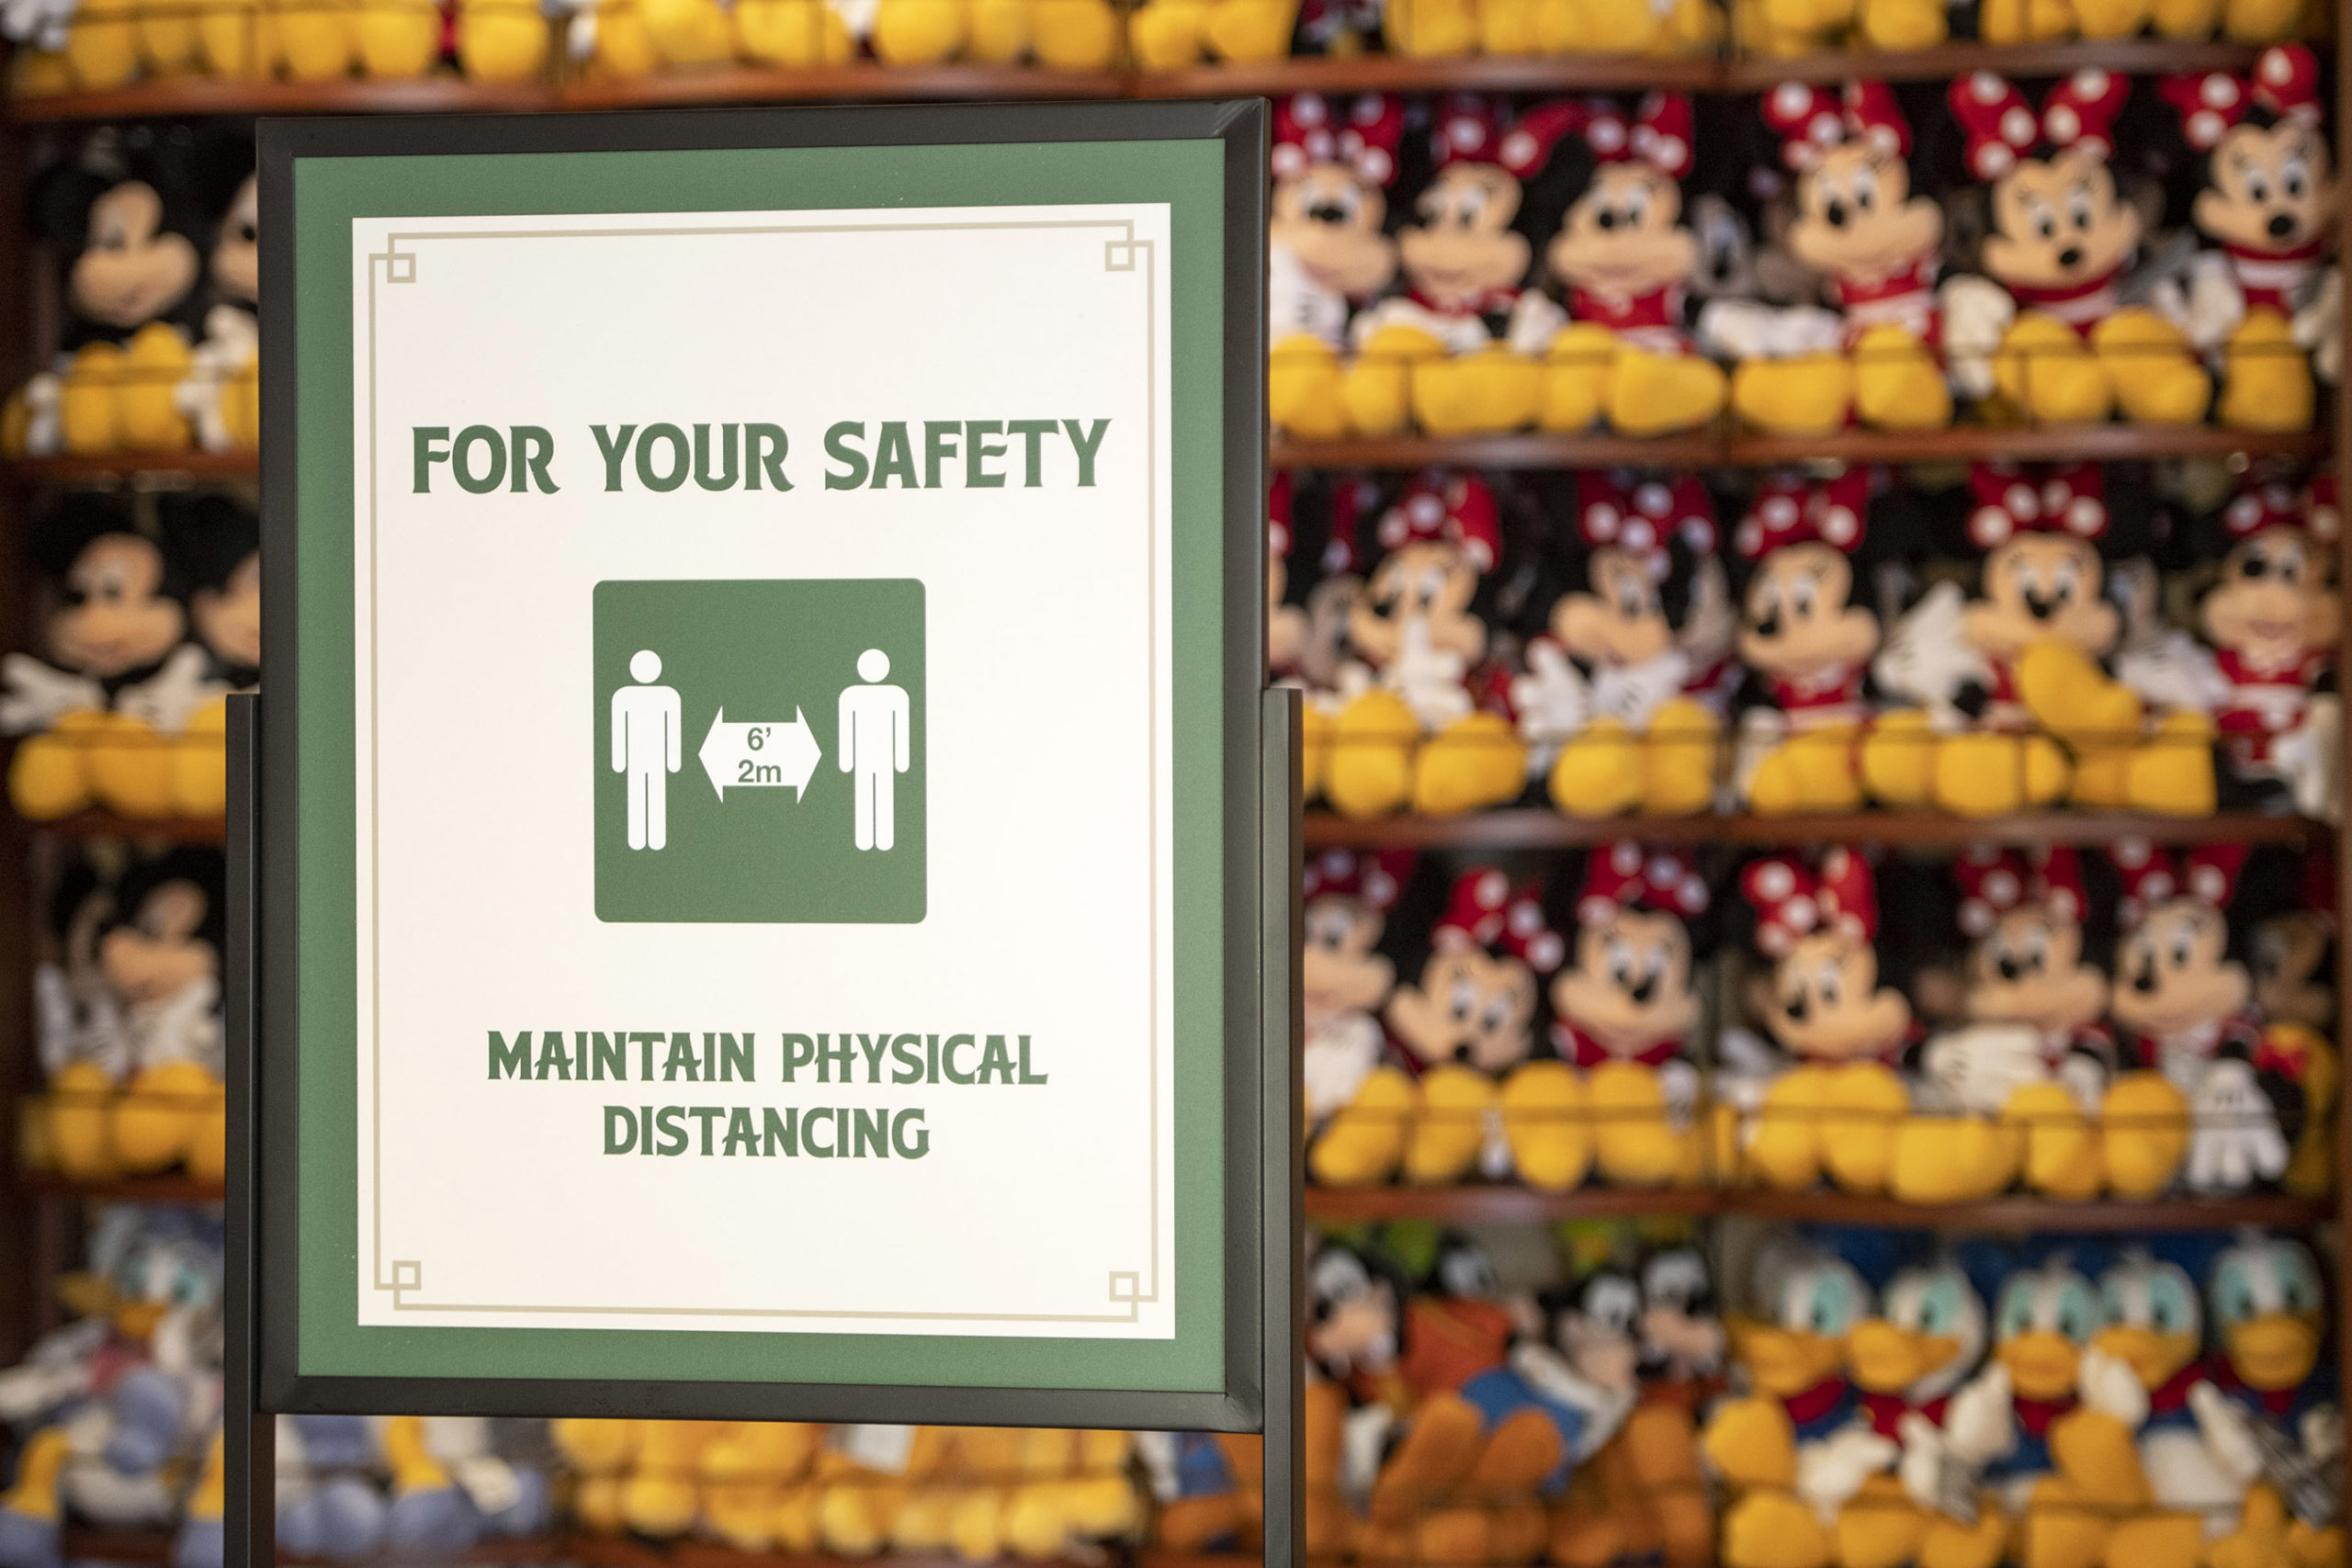 Health and Safety Signage at Walt Disney World Resort Theme Park